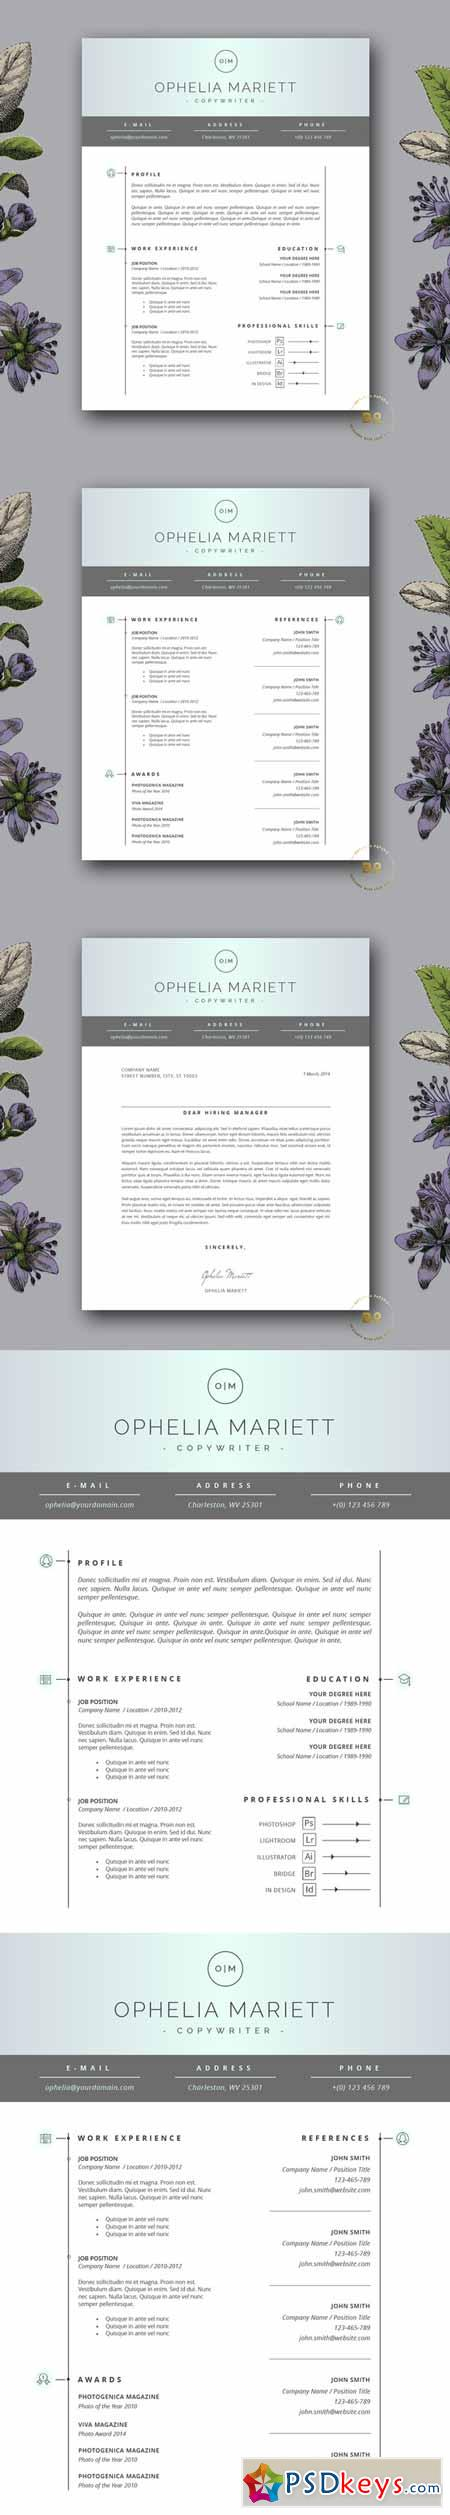 modern resume template cv design 213485  u00bb free download